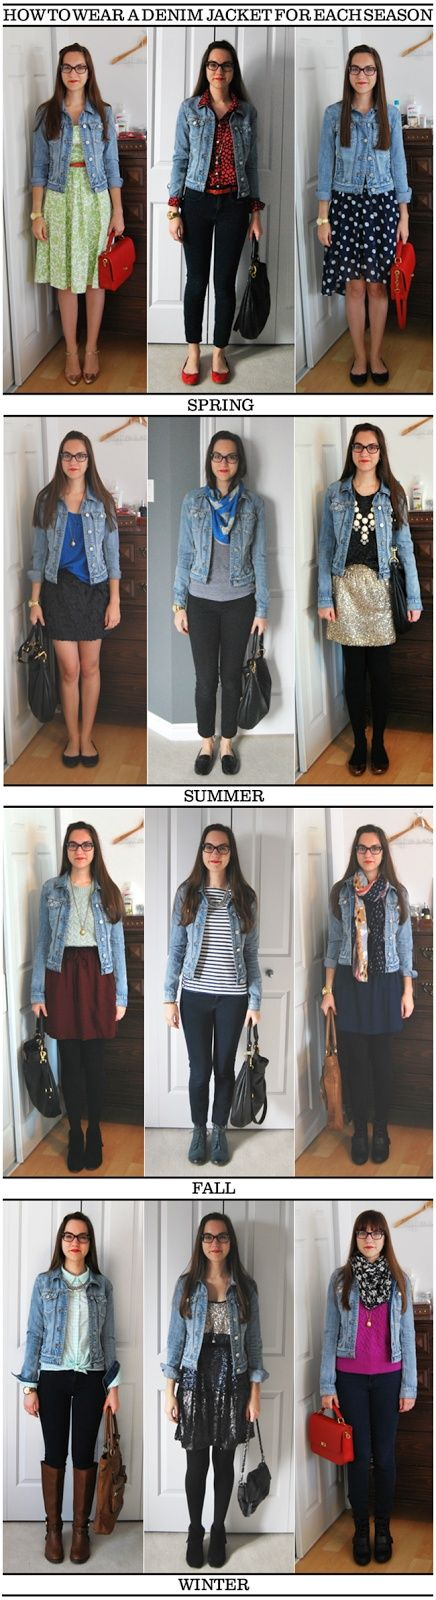 Ruffles & Sequins || a style blog: How to Wear a Denim Jacket Year Round